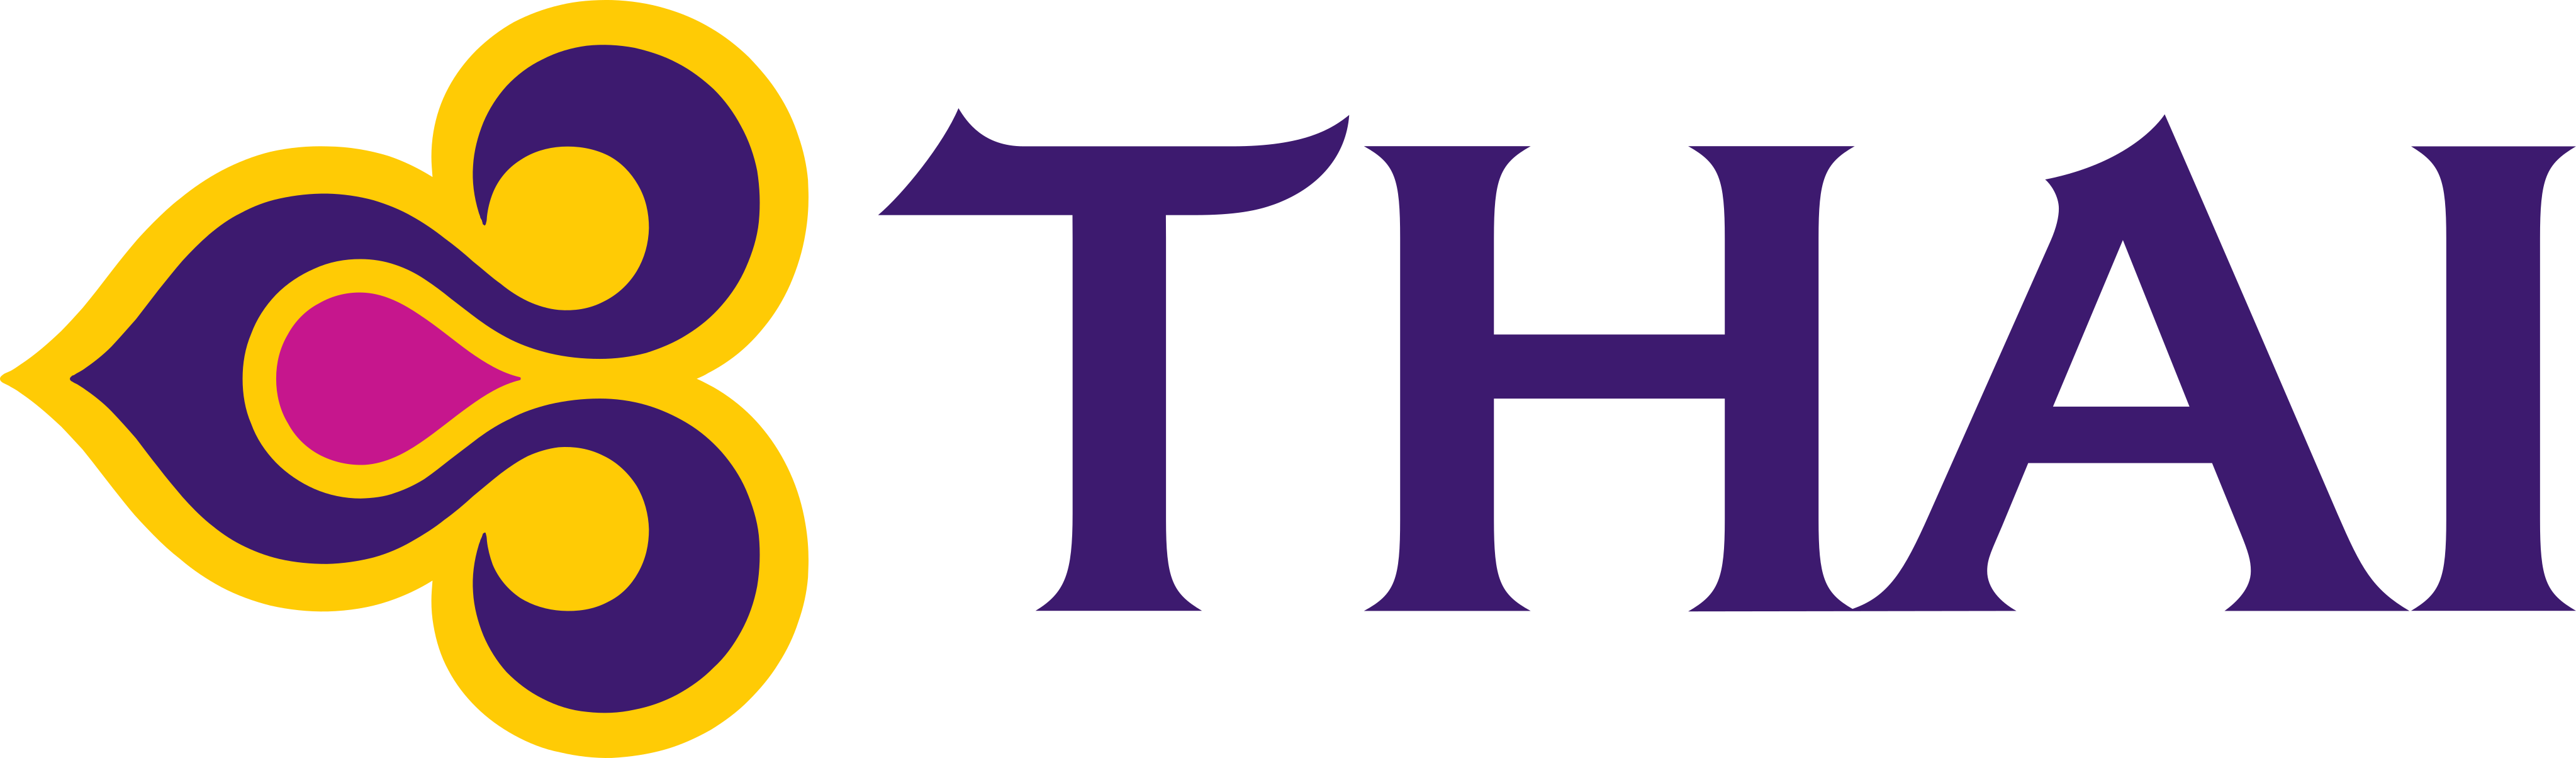 thai airways logo - Thai Airways Logo